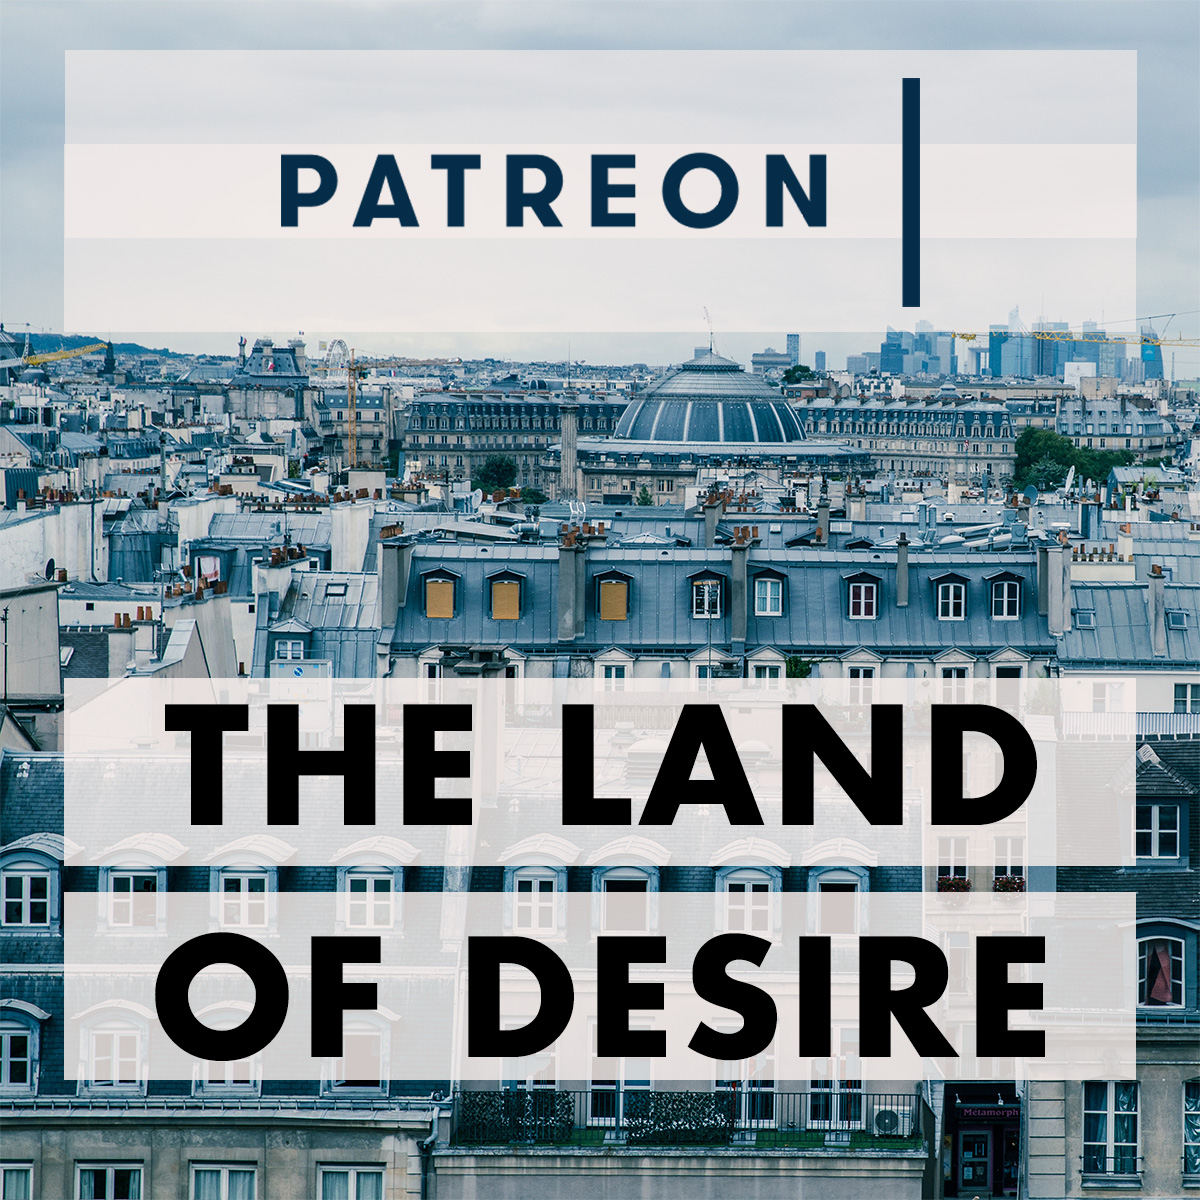 As we celebrate The Land of Desire's first anniversary, I need your help and support growing the show in the year to come!